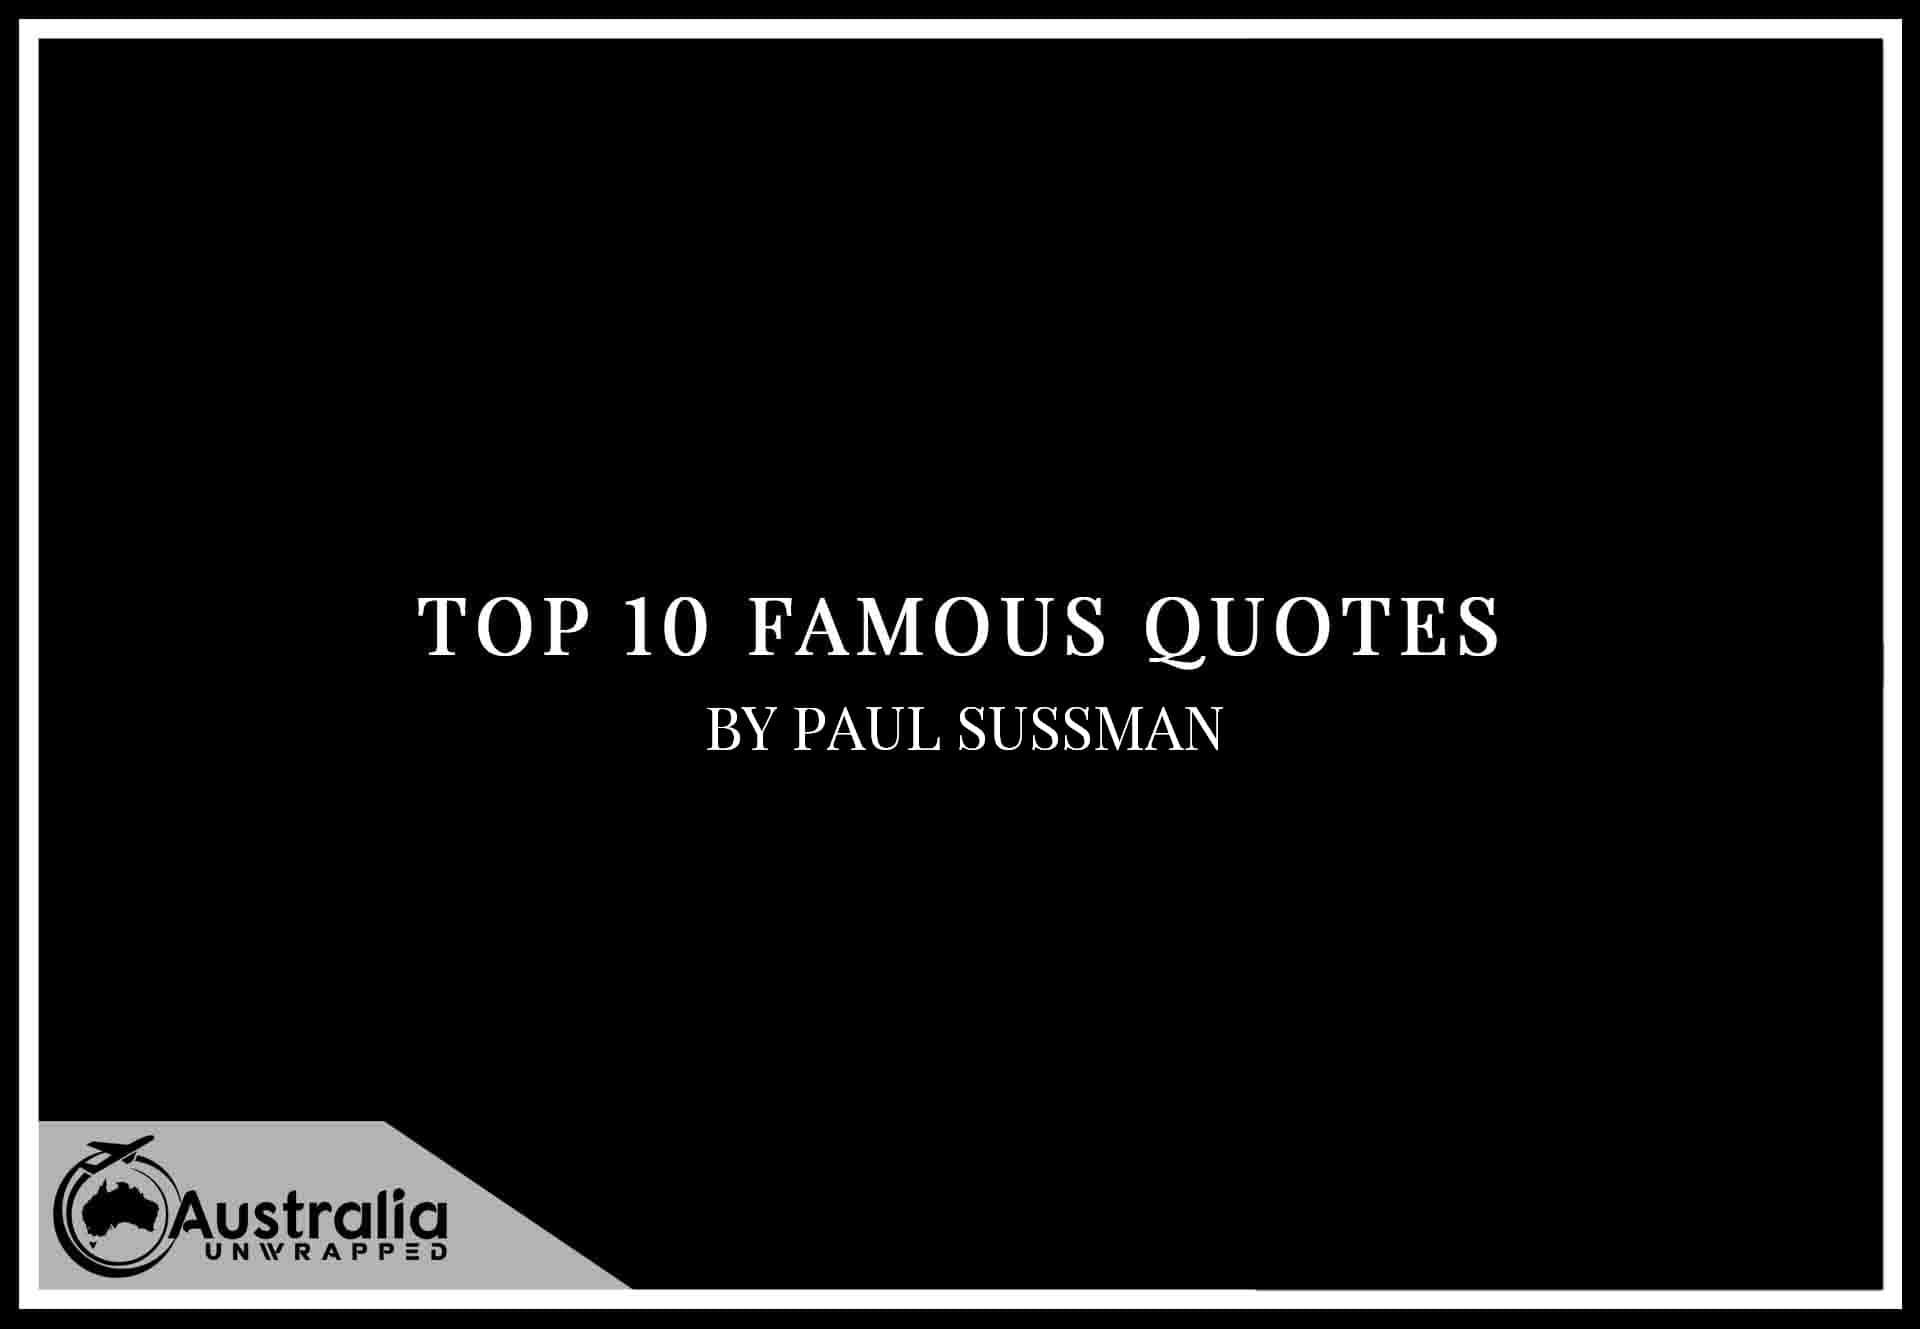 Top 10 Famous Quotes by Author Paul Sussman